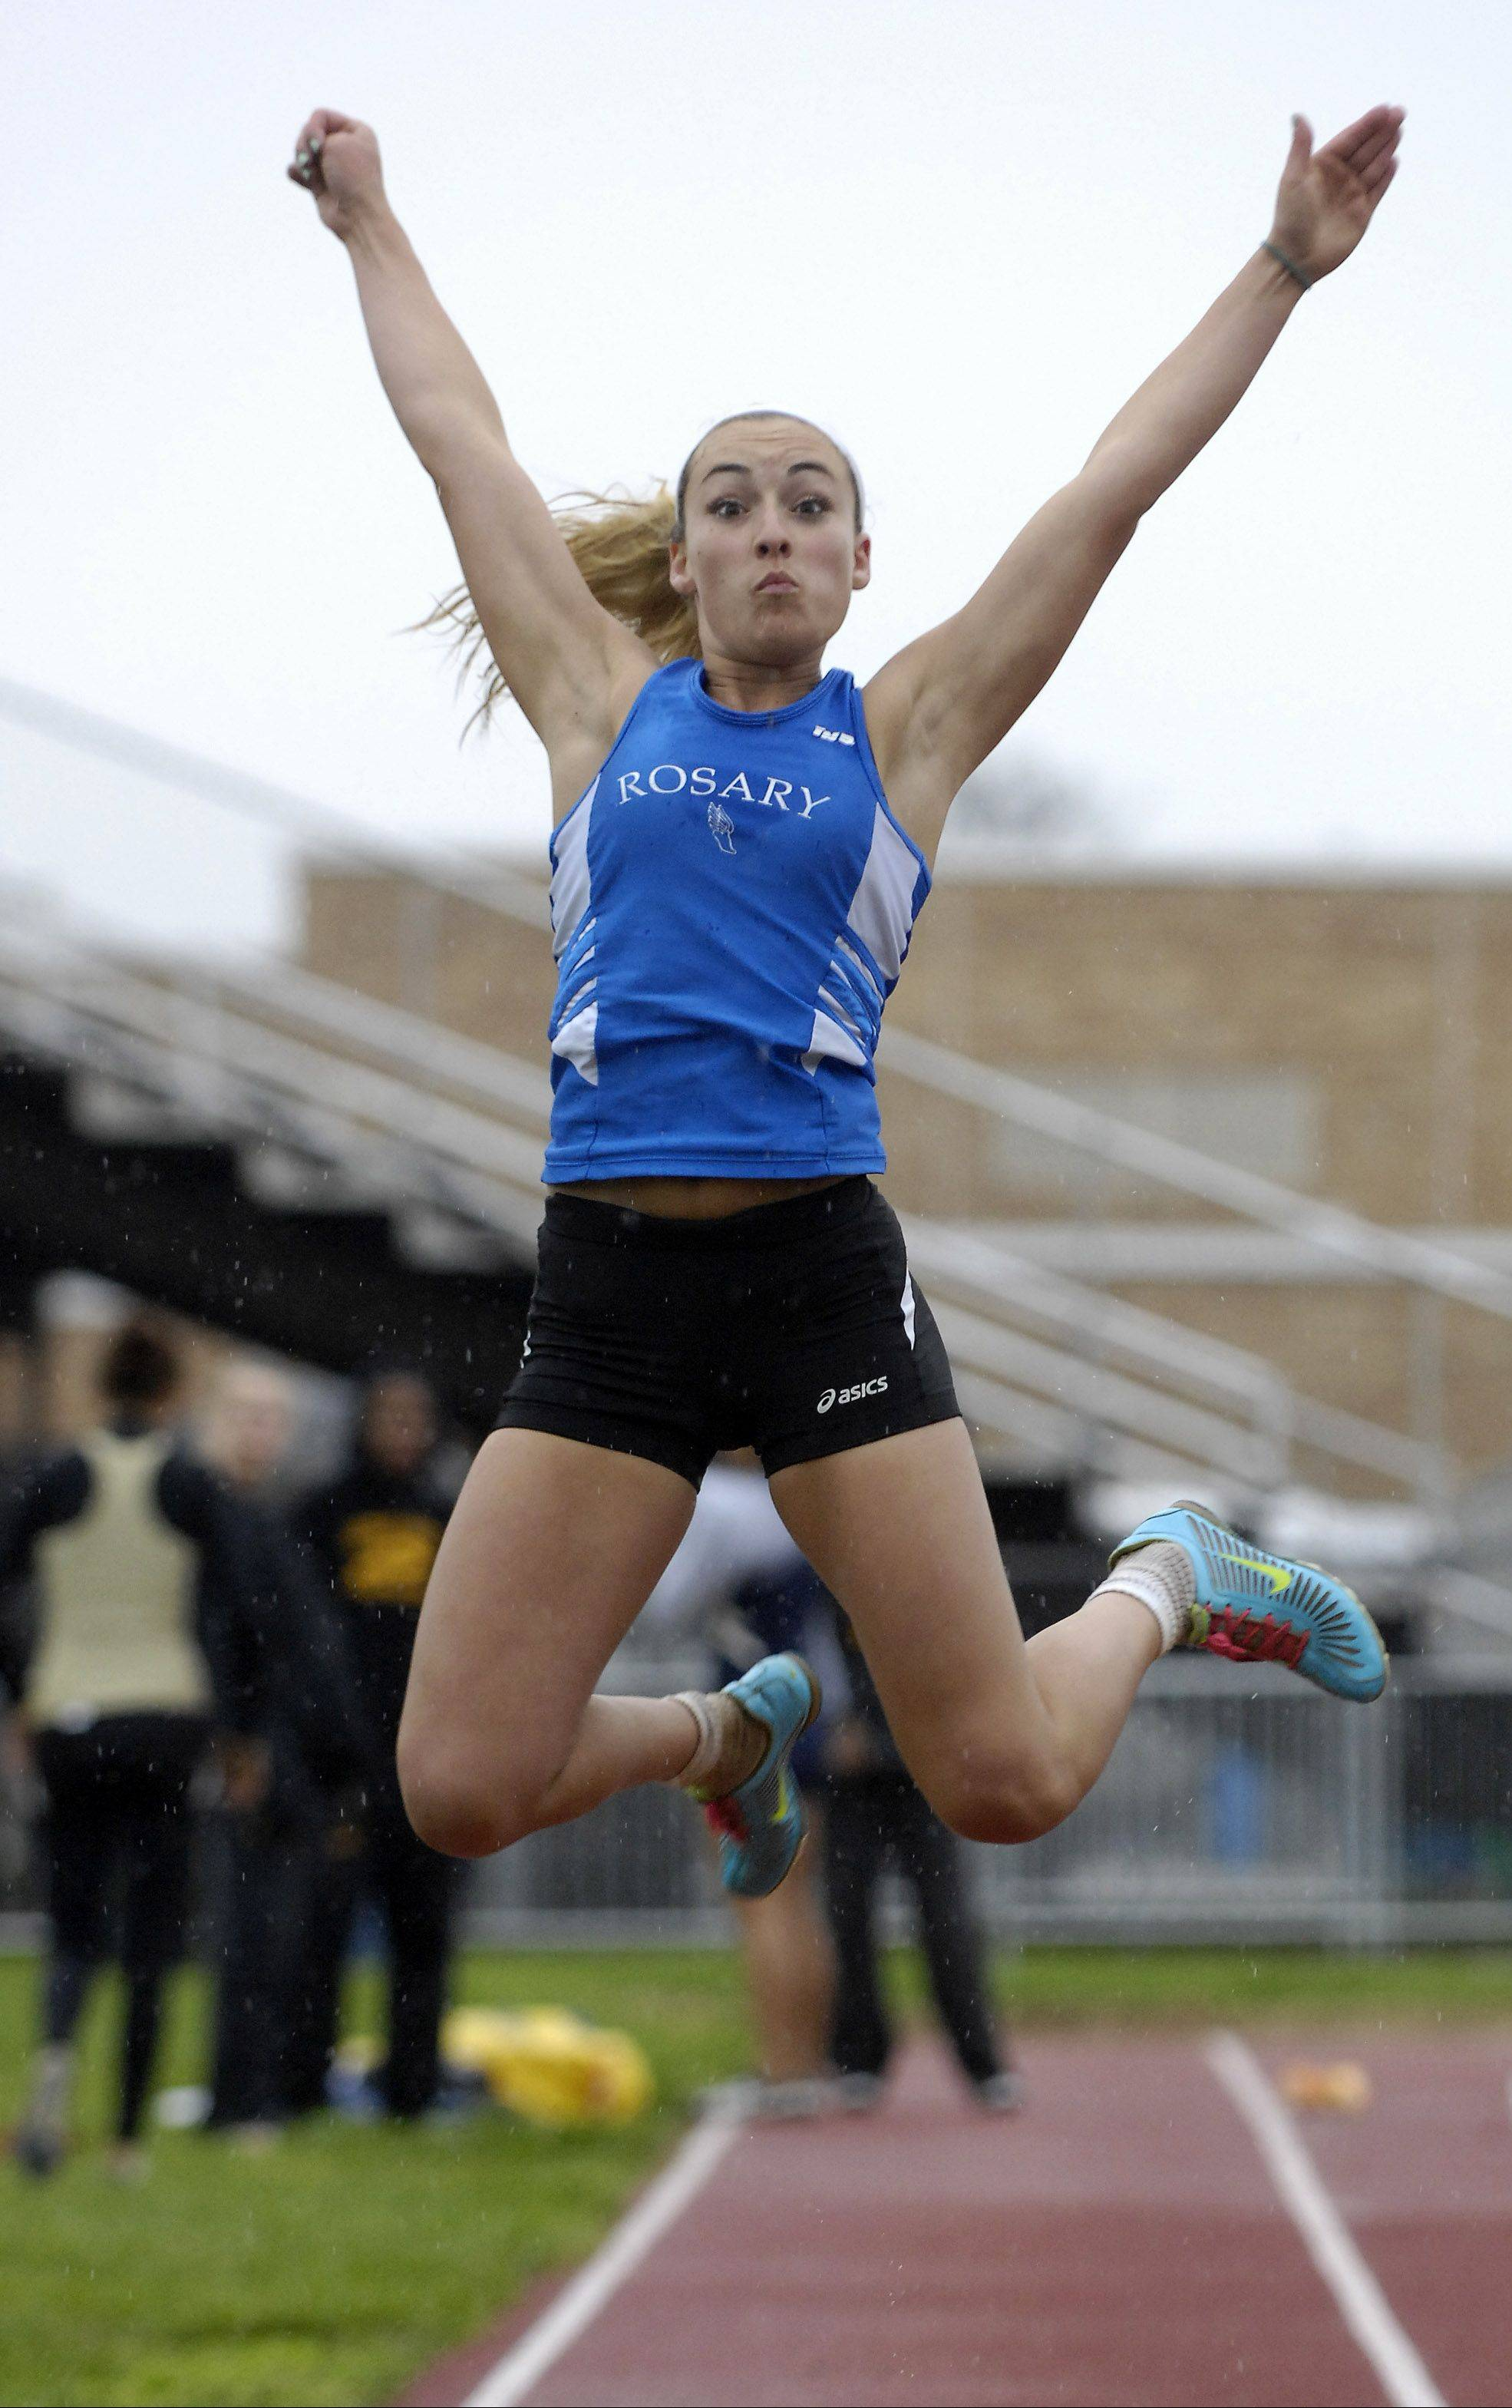 Rosary's Nicole Basile competes in the long jump.